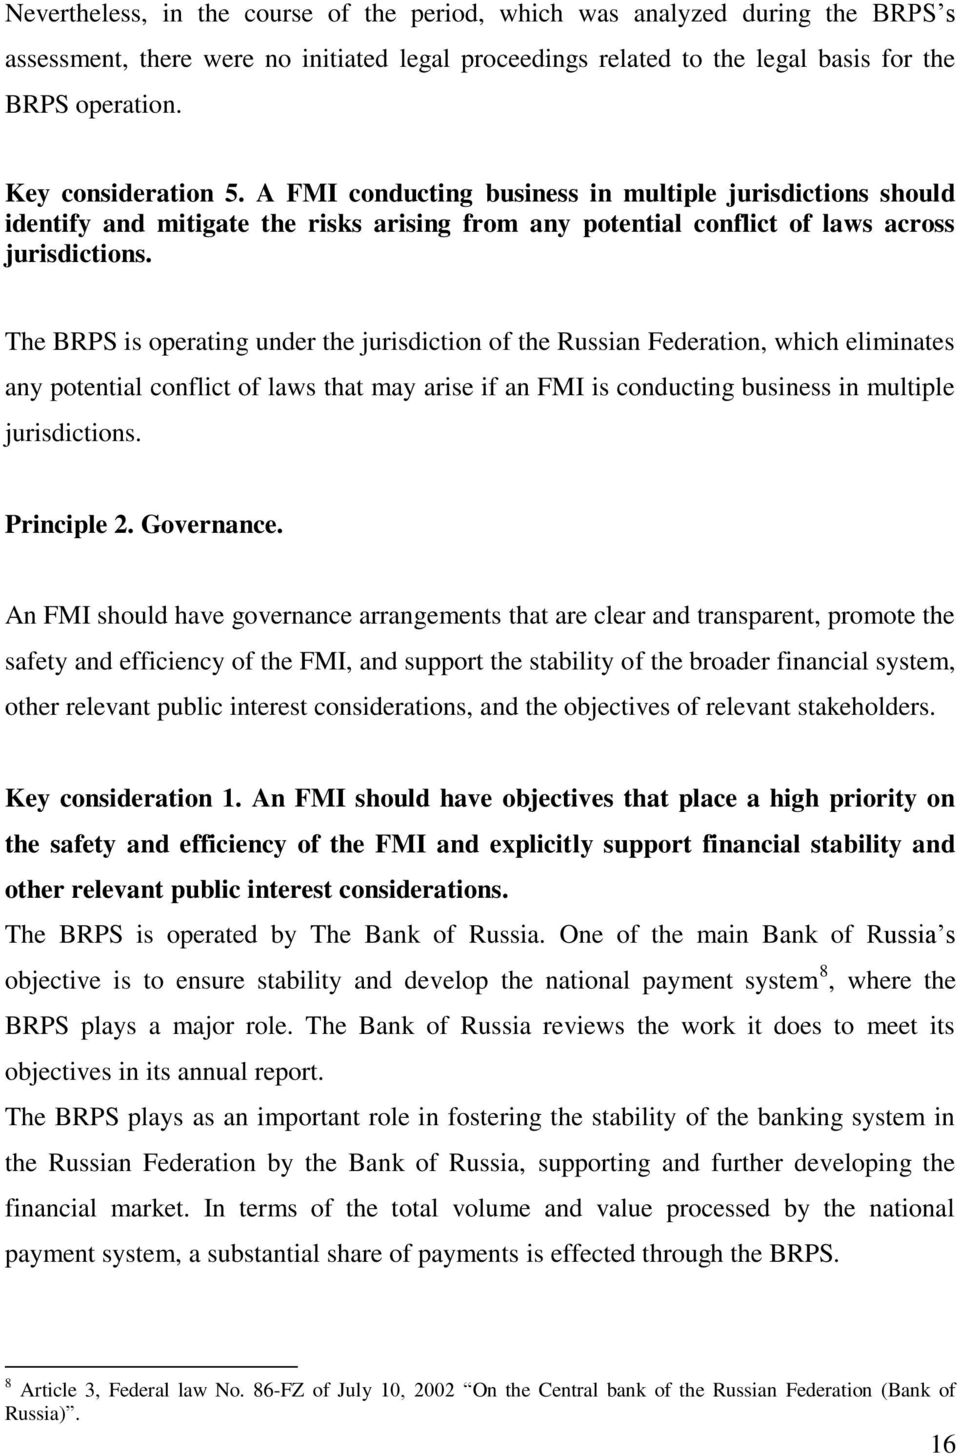 The BRPS is operating under the jurisdiction of the Russian Federation, which eliminates any potential conflict of laws that may arise if an FMI is conducting business in multiple jurisdictions.